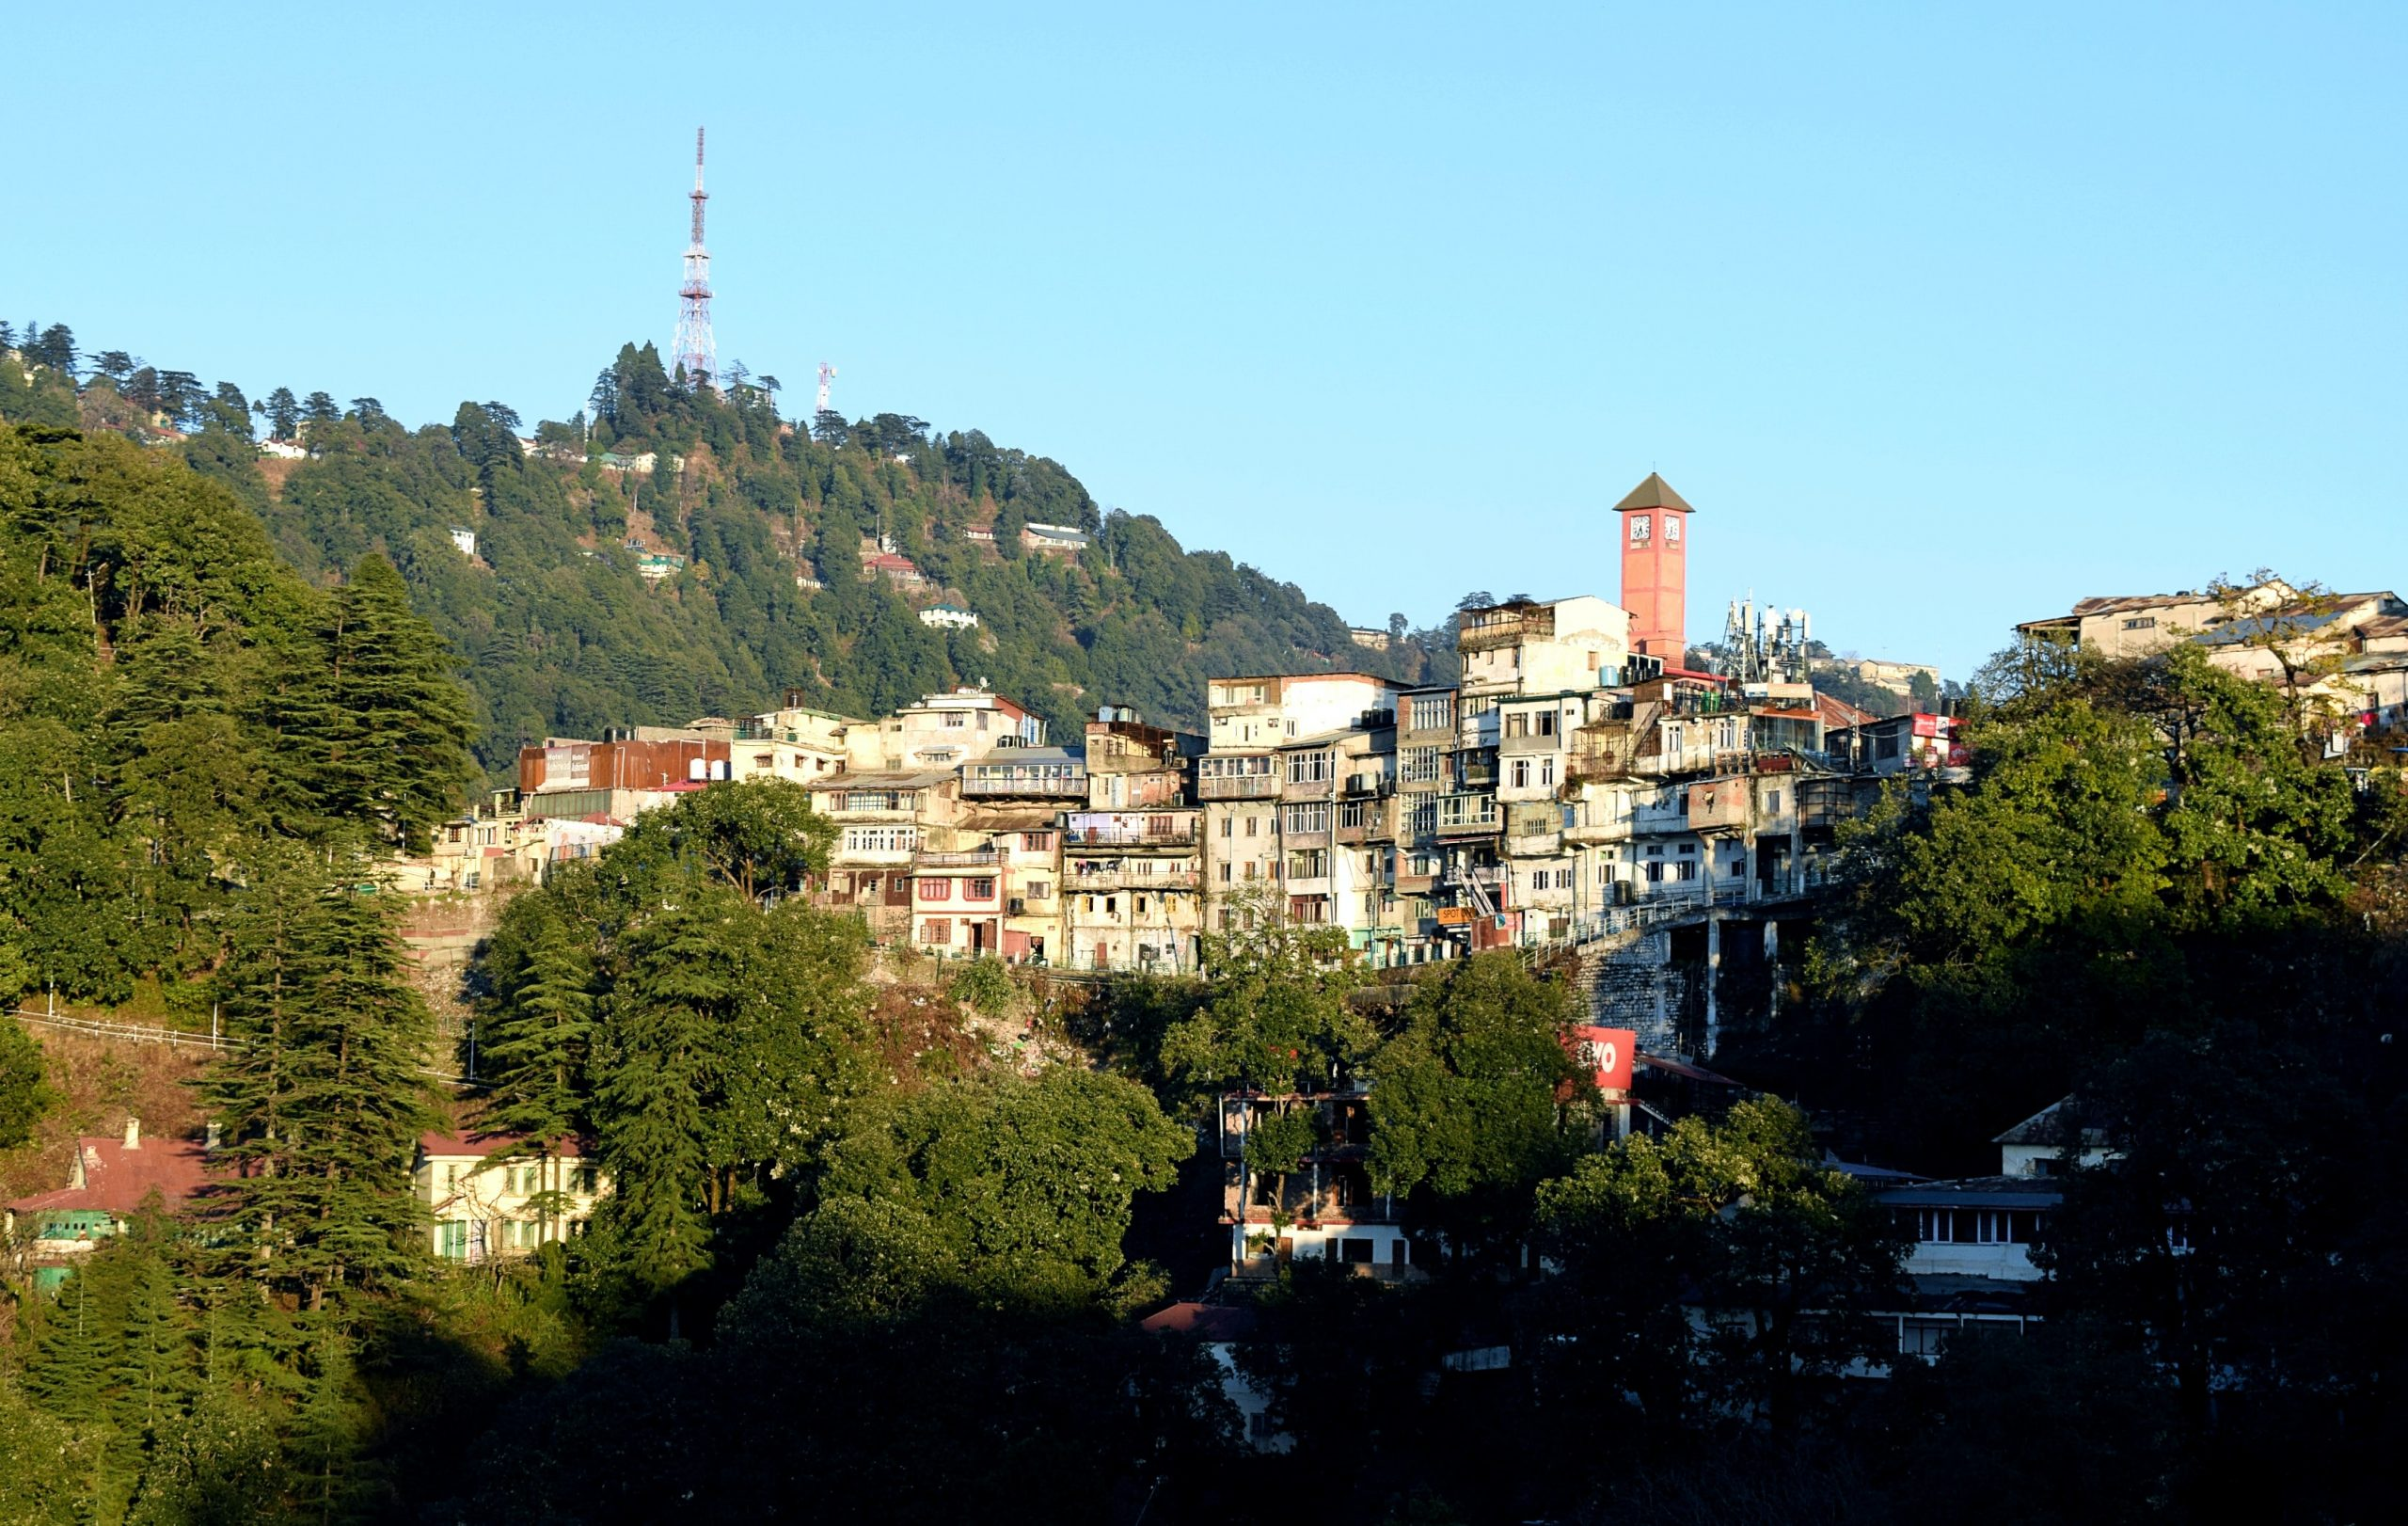 Mussoorie Tour – Top 15 Places to Visit